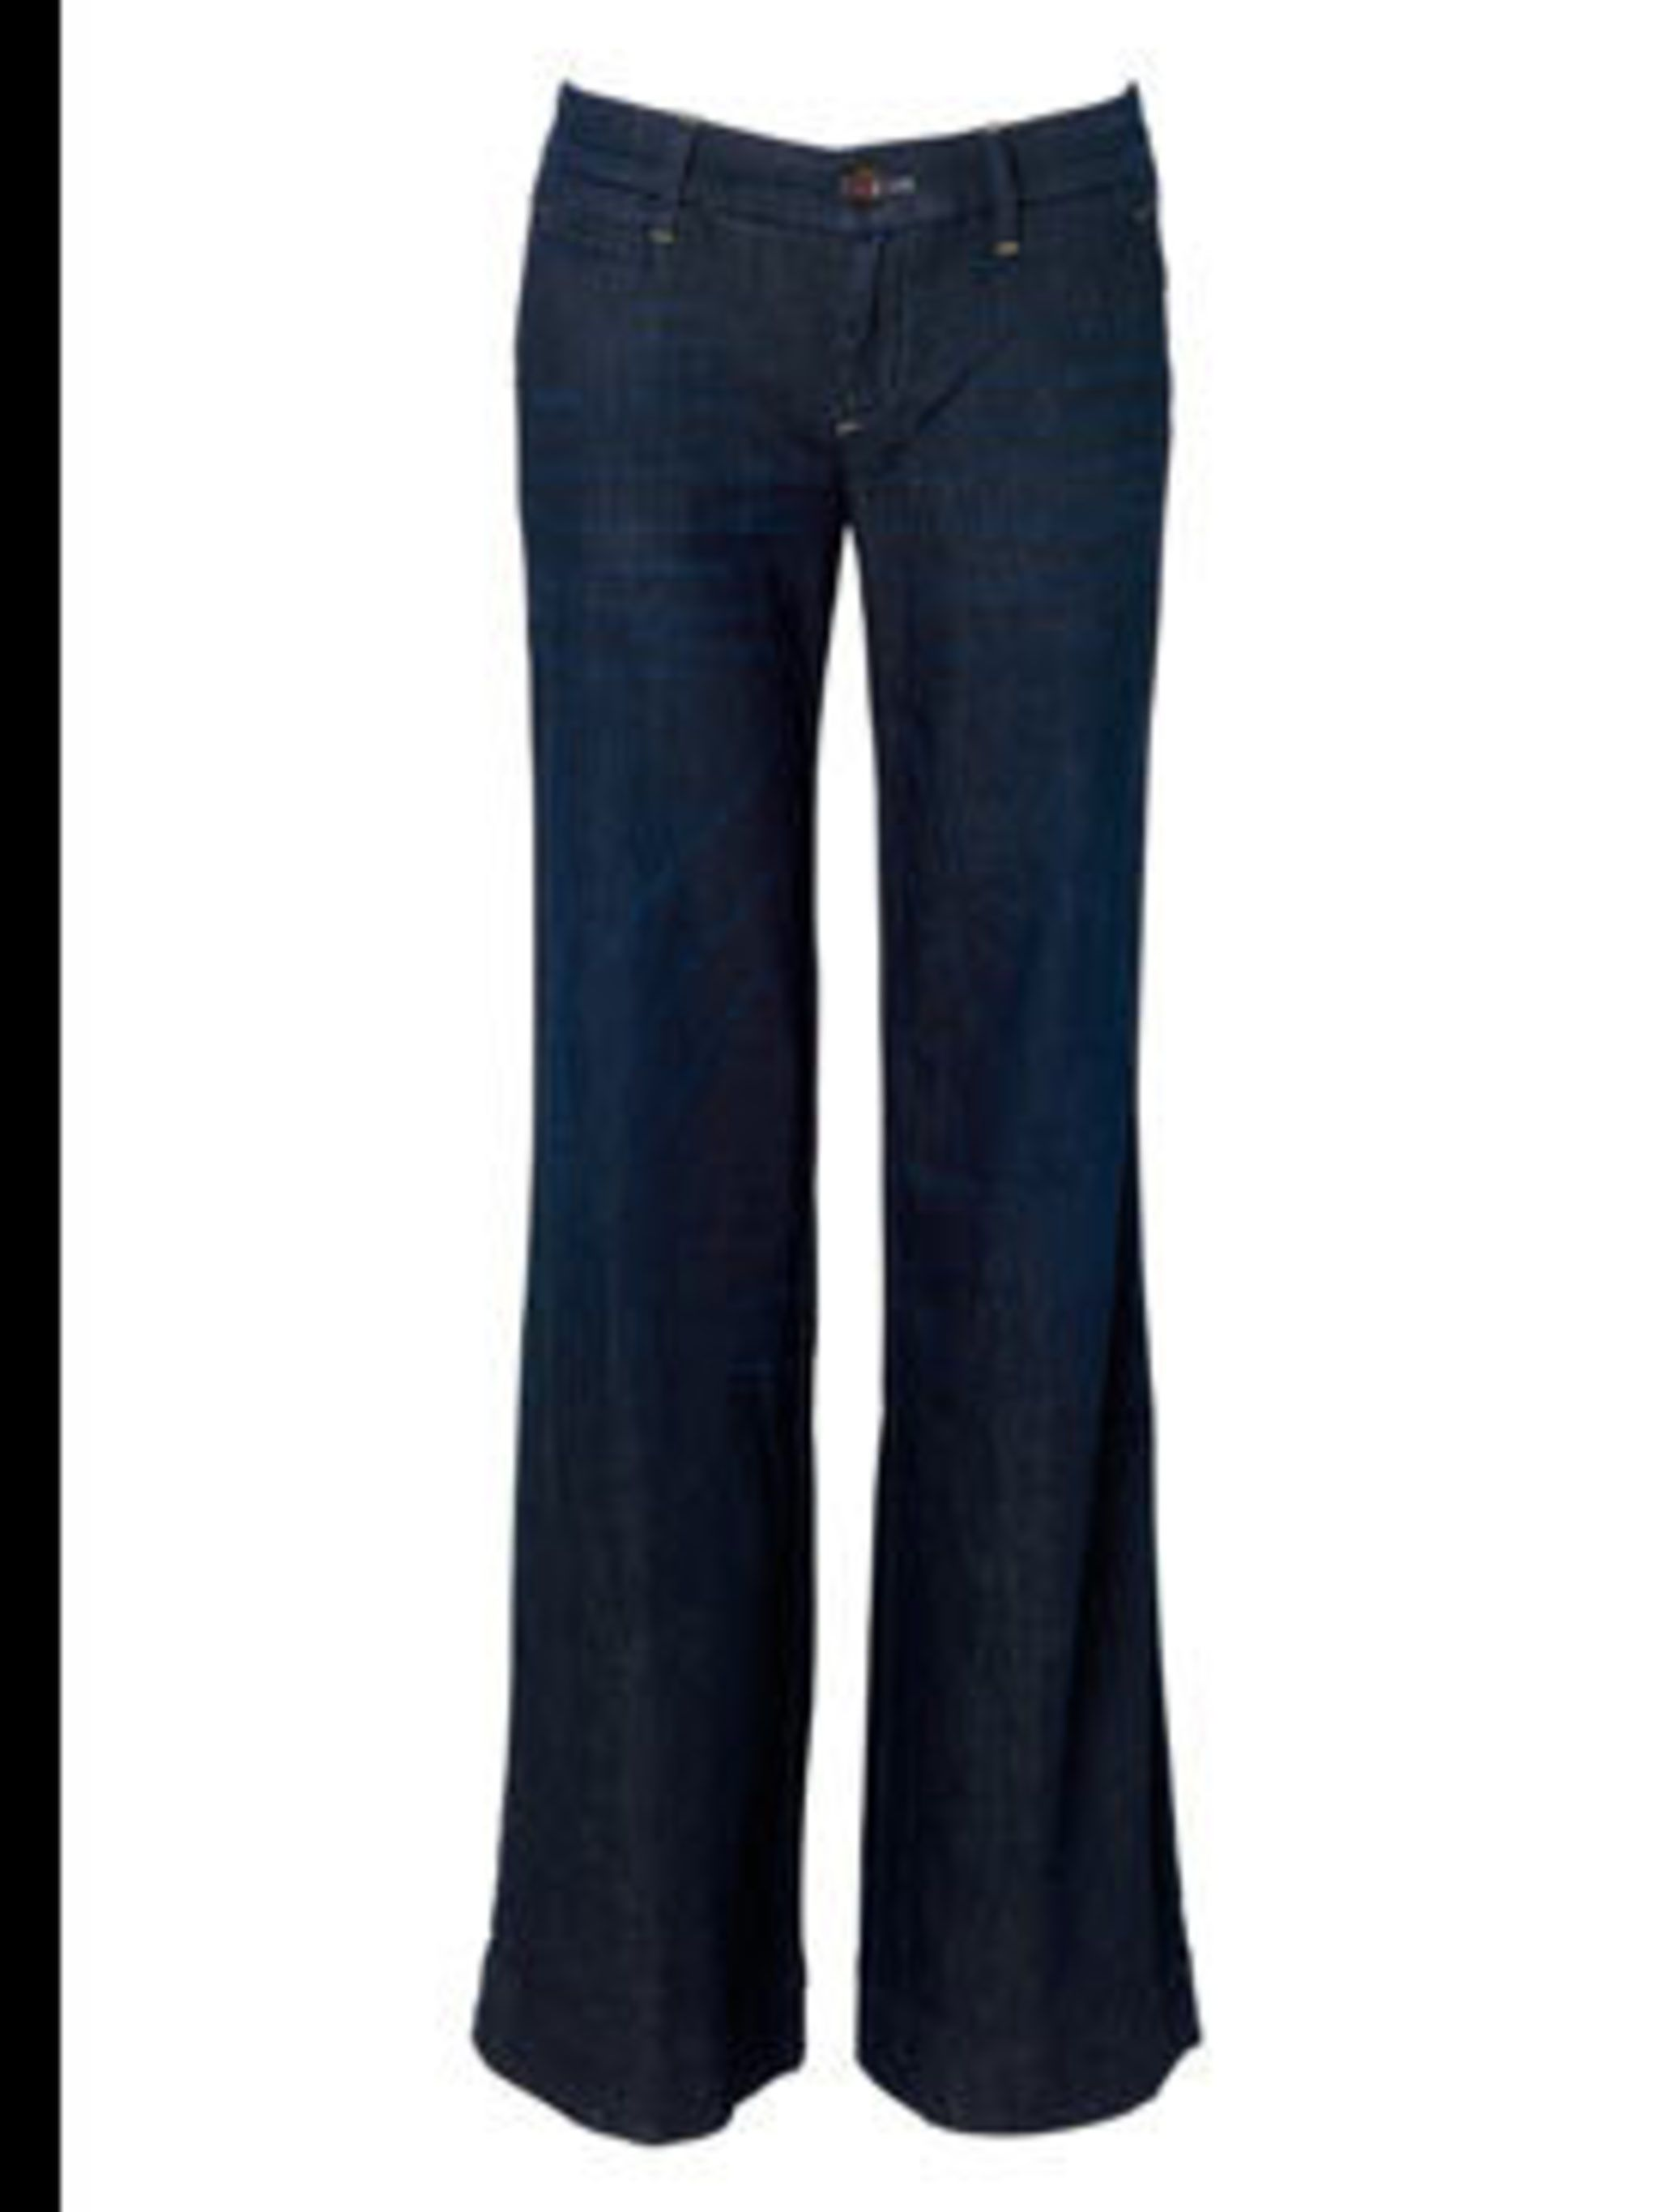 <p>Jeans, £45 by Gap. Fir stockists call 0800 427 789.</p>